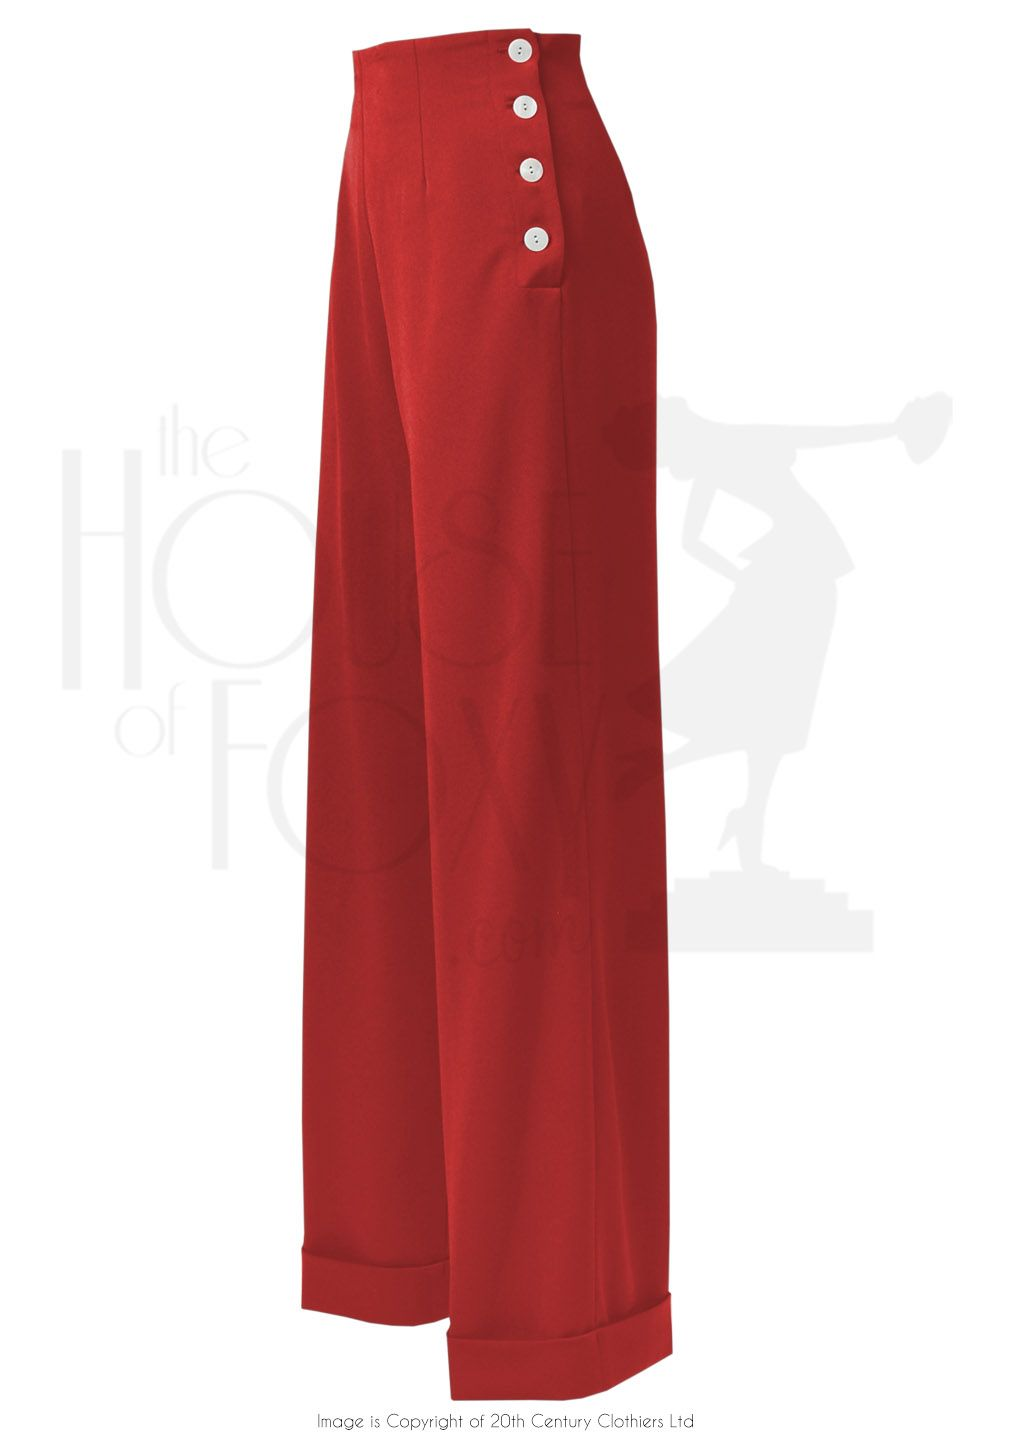 1940s Ladies Swing Trousers in Red